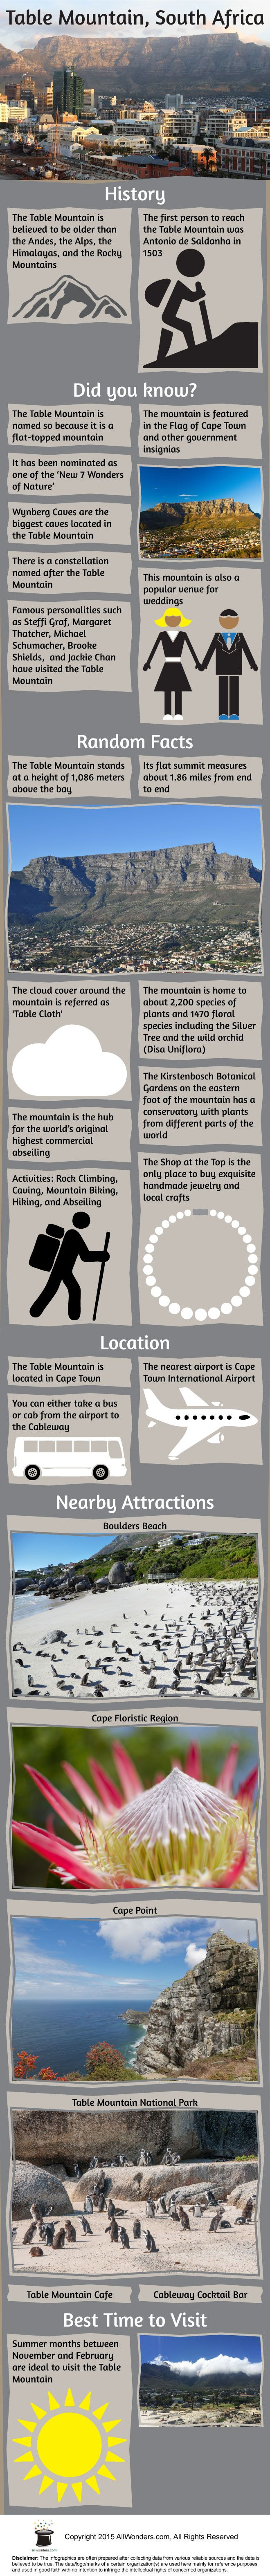 Infographic showing facts and information about the Table Mountain. Know about its location, best time to go, nearby attractions etc. with this infographic.